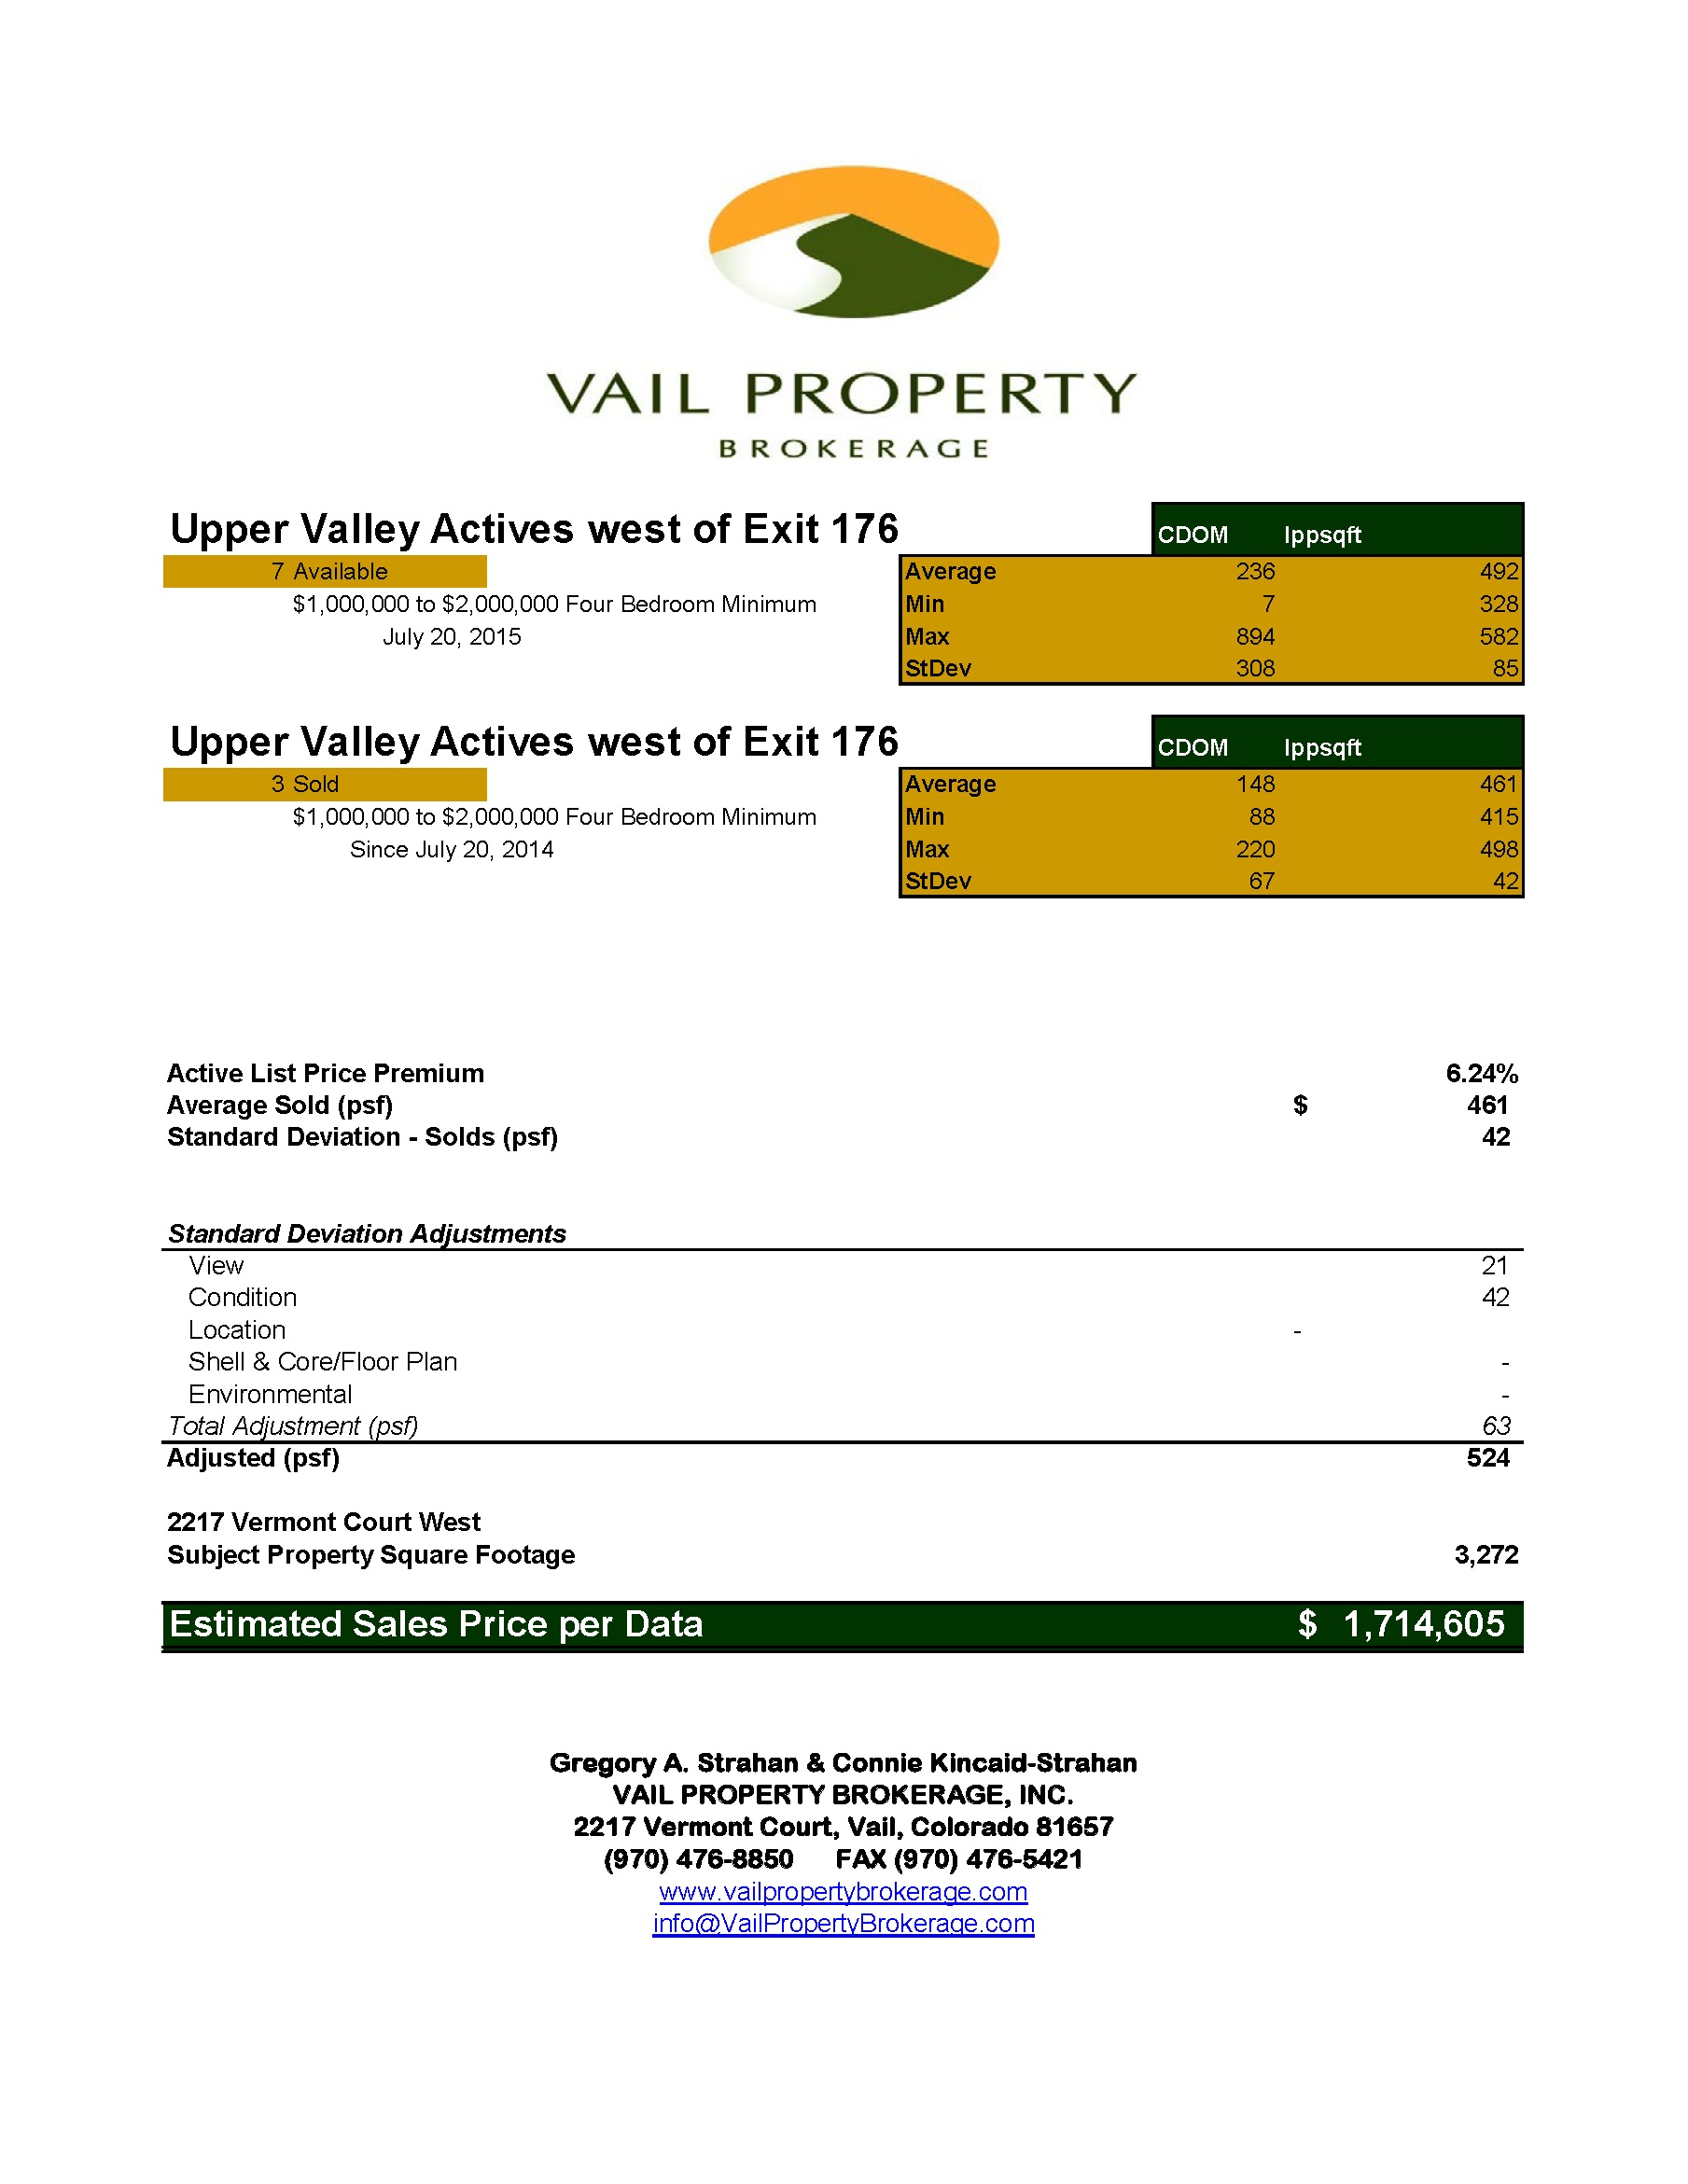 vailpropertybrokerage.com VermontCt_OpValue